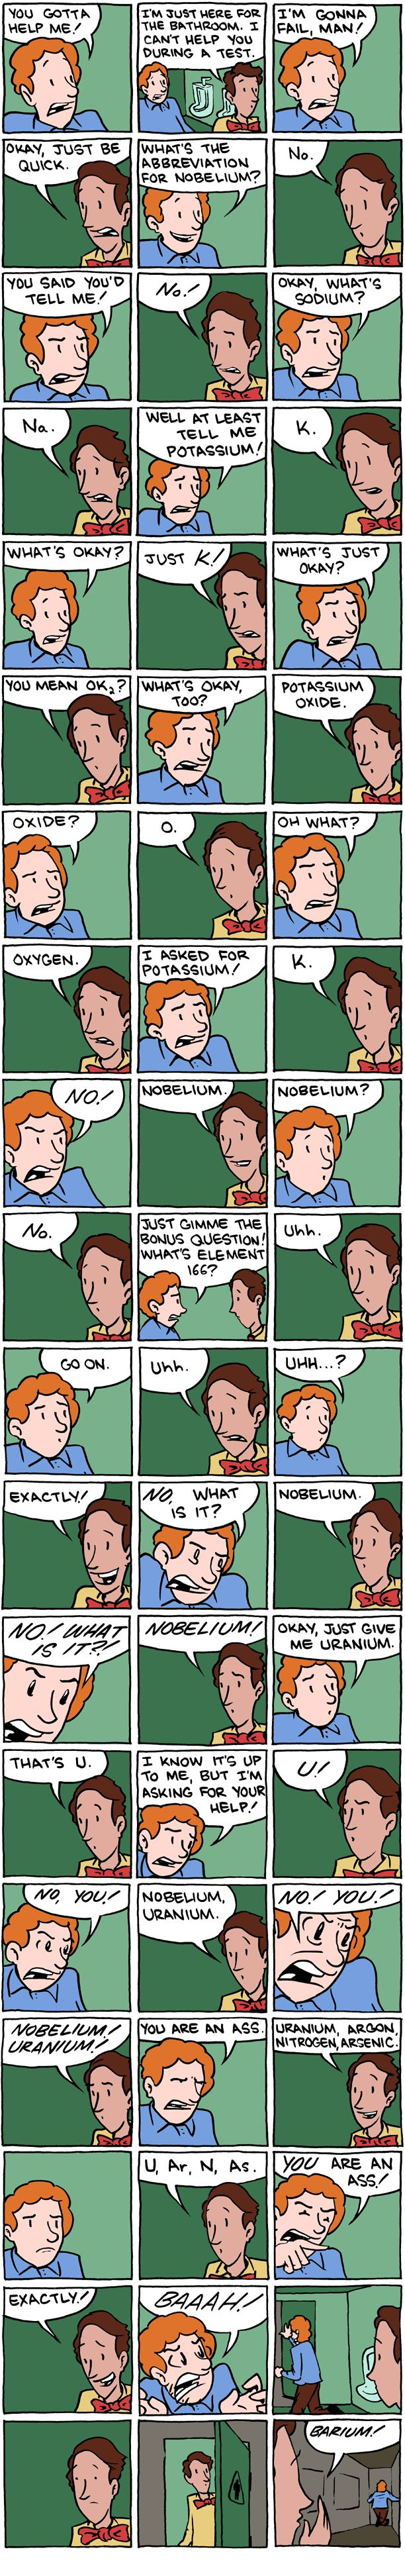 What if you don't know enough even to cheat on the chemistry exam?  Humor from  Saturday Morning Breakfast Cereal, on the Periodic Table of Elements